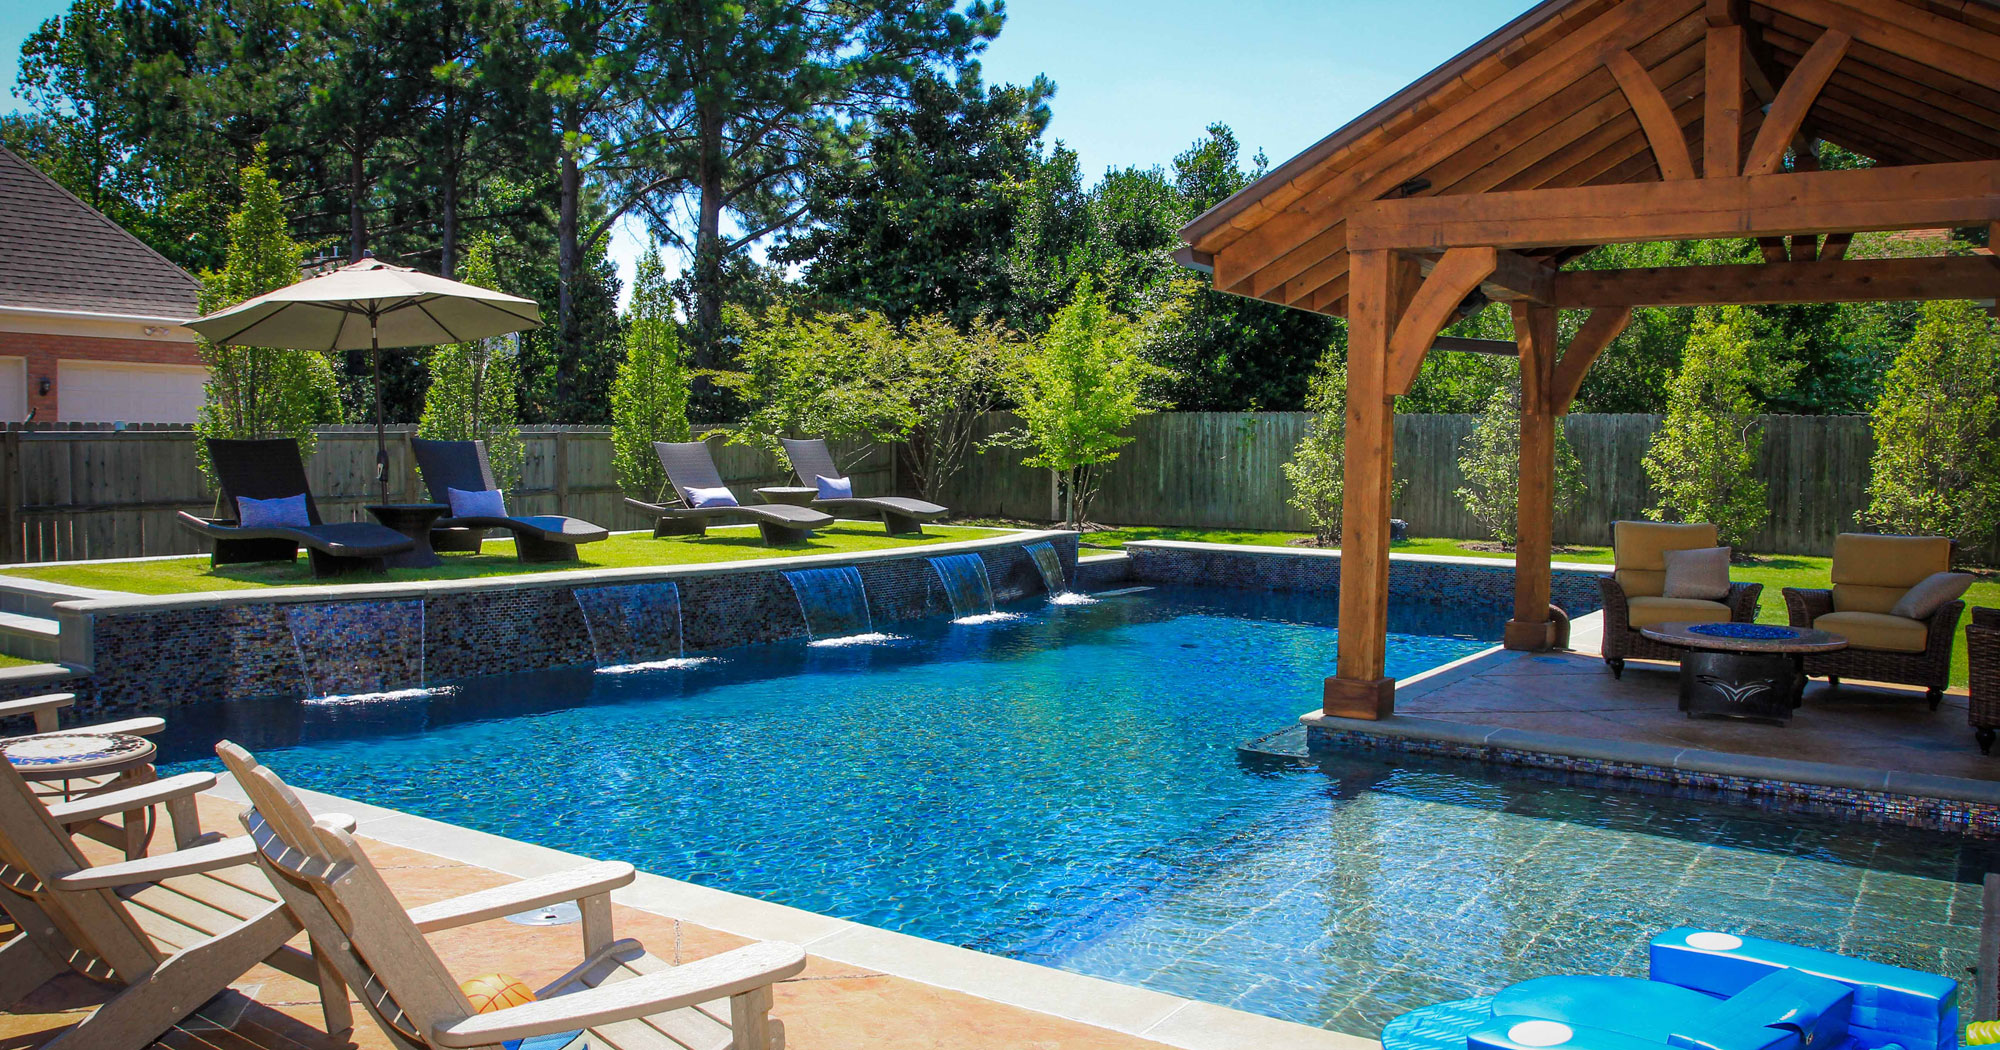 Top Essential Tips For Planning And Designing Your Backyard Pool